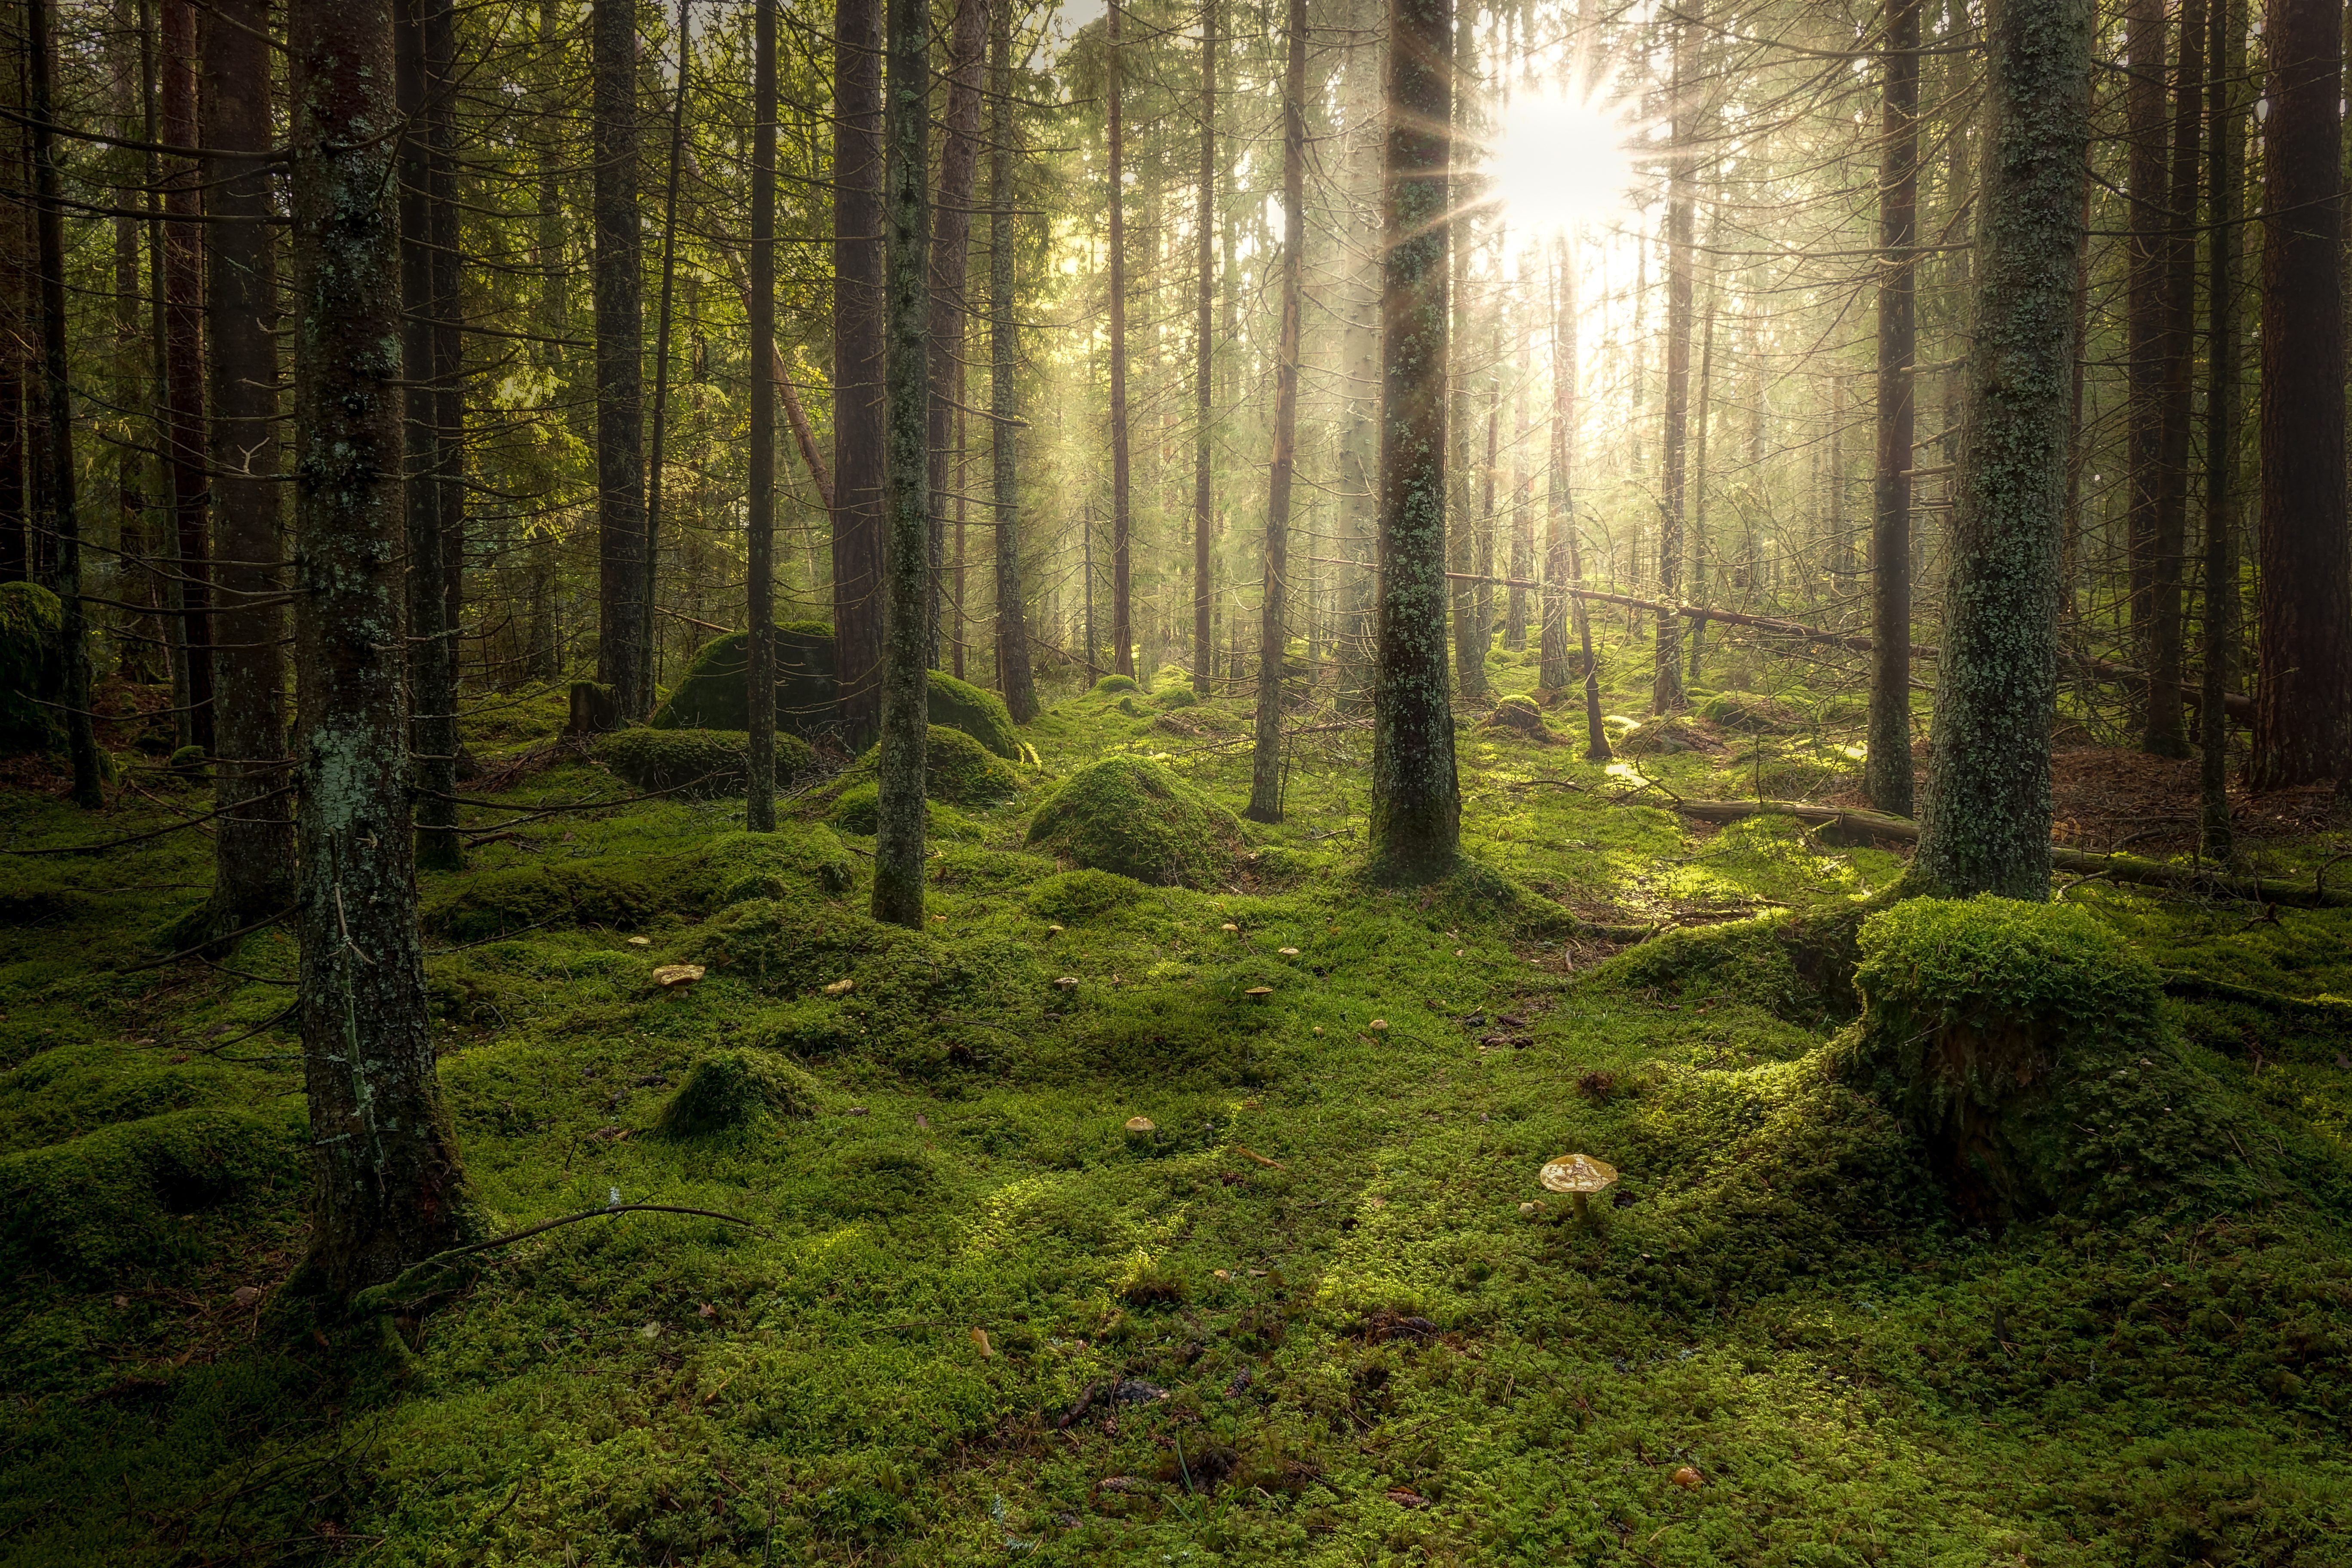 Green mossy forest with beautiful light from the sun shining between the trees in the mist.